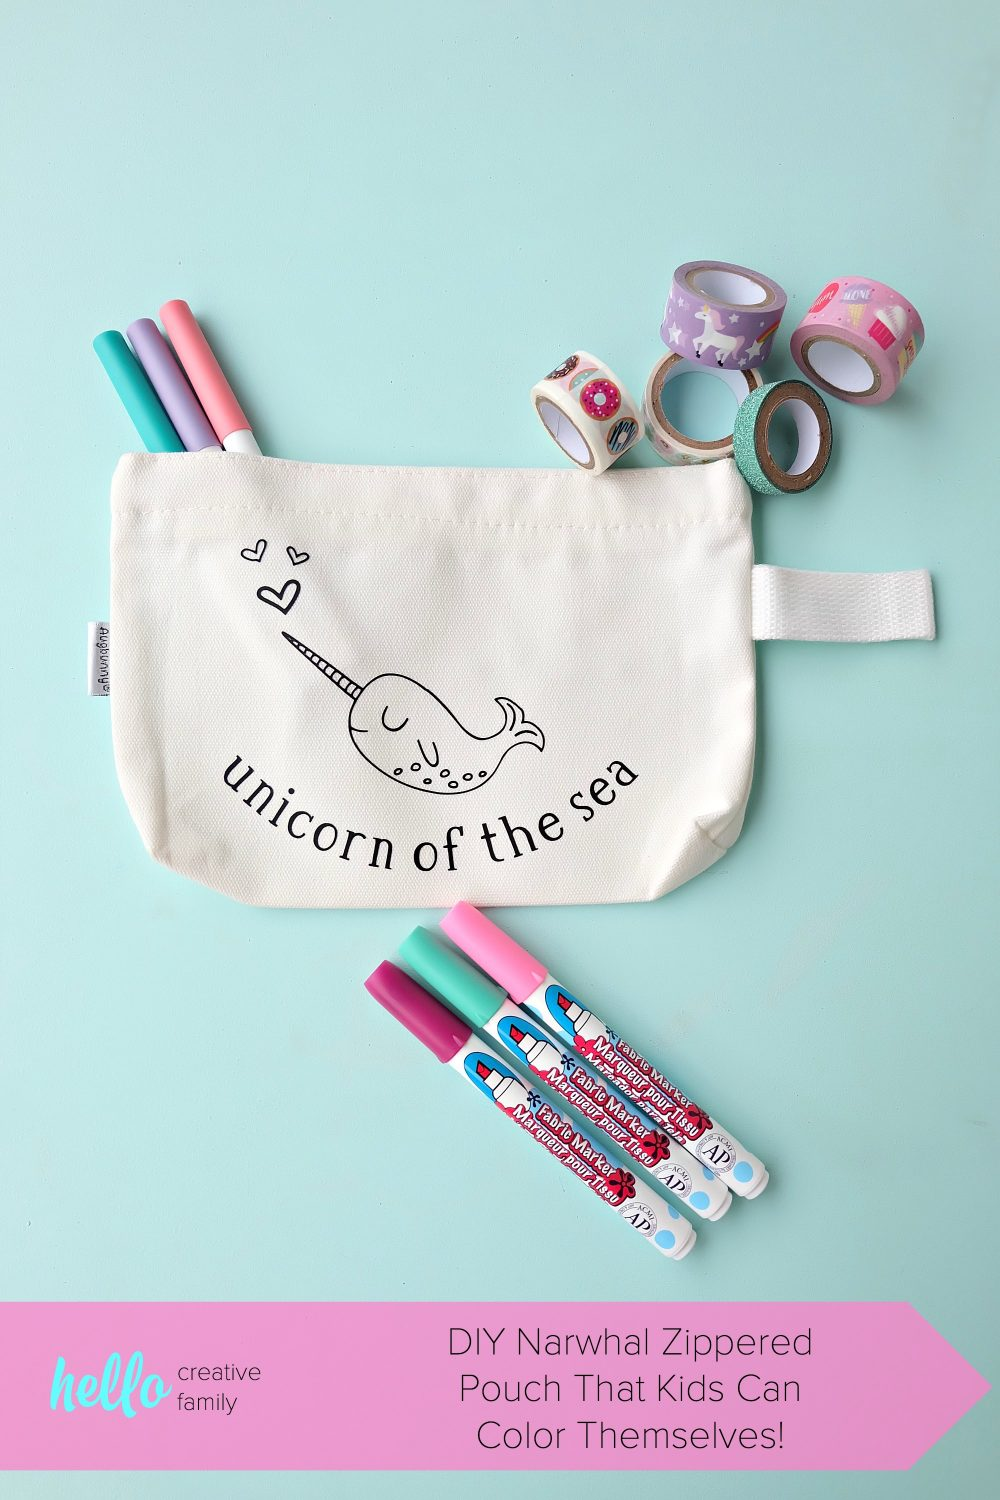 Create a sweet little DIY Narwhal Zippered Pouch that the recipient can color in! This thoughtful handmade gift idea takes only minutes to make and is a great present for kids (or adults!) It's a coloring sheet and a pencil pouch in one! #Cricut #Narwhal #DIY #Coloring